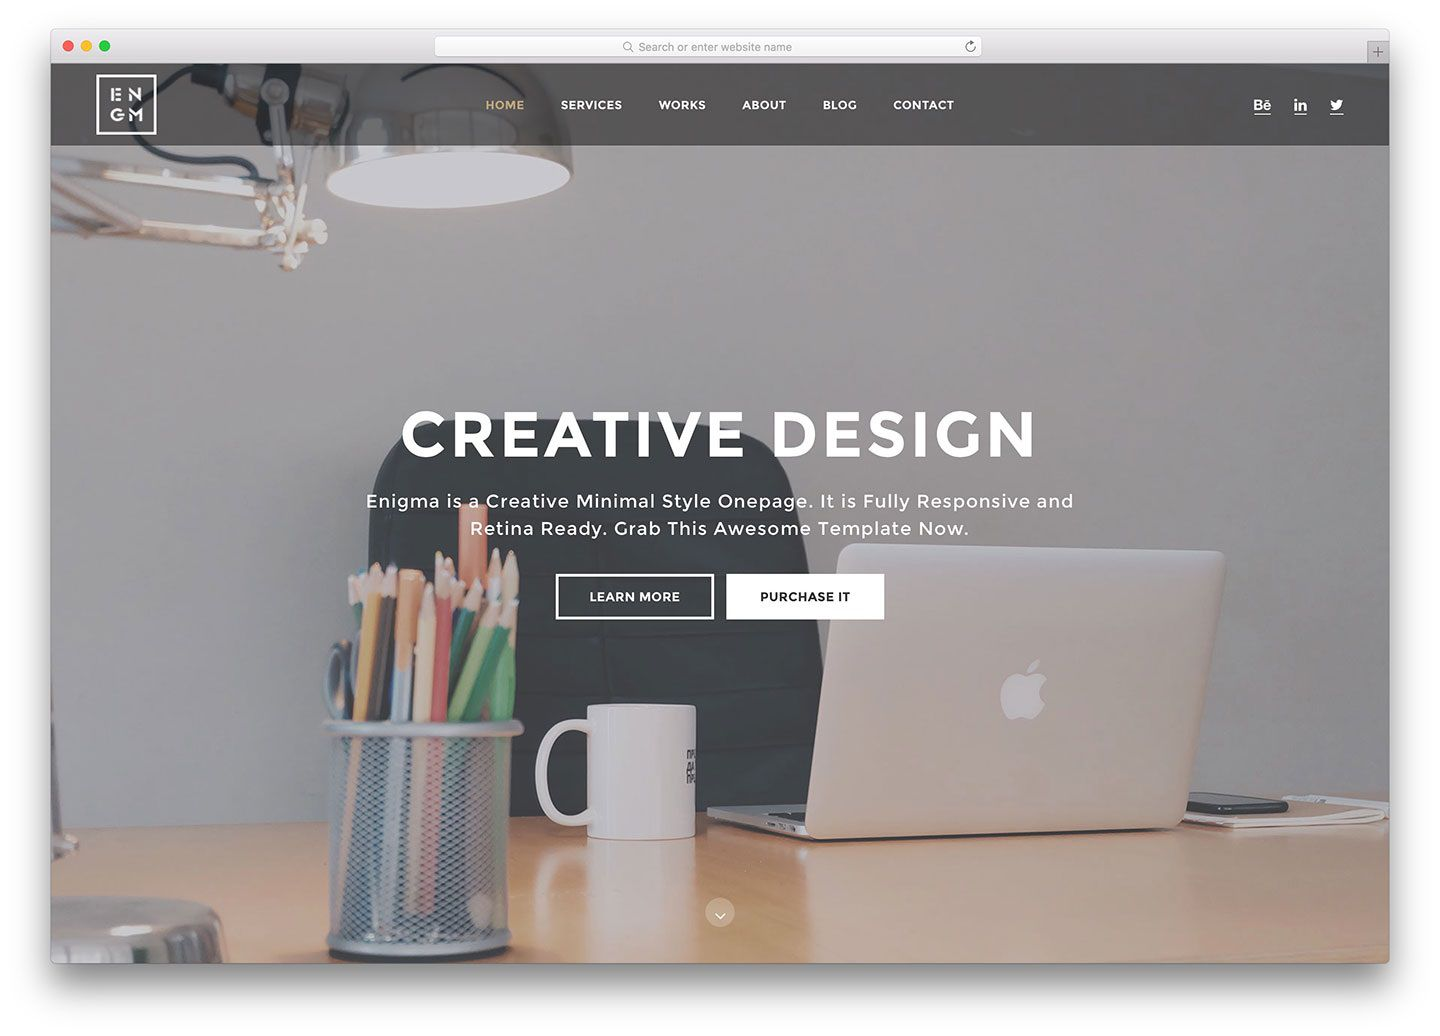 007 Breathtaking Download Web Template Html5 Highest Quality  Photography Website Free Logistic BusinesFull